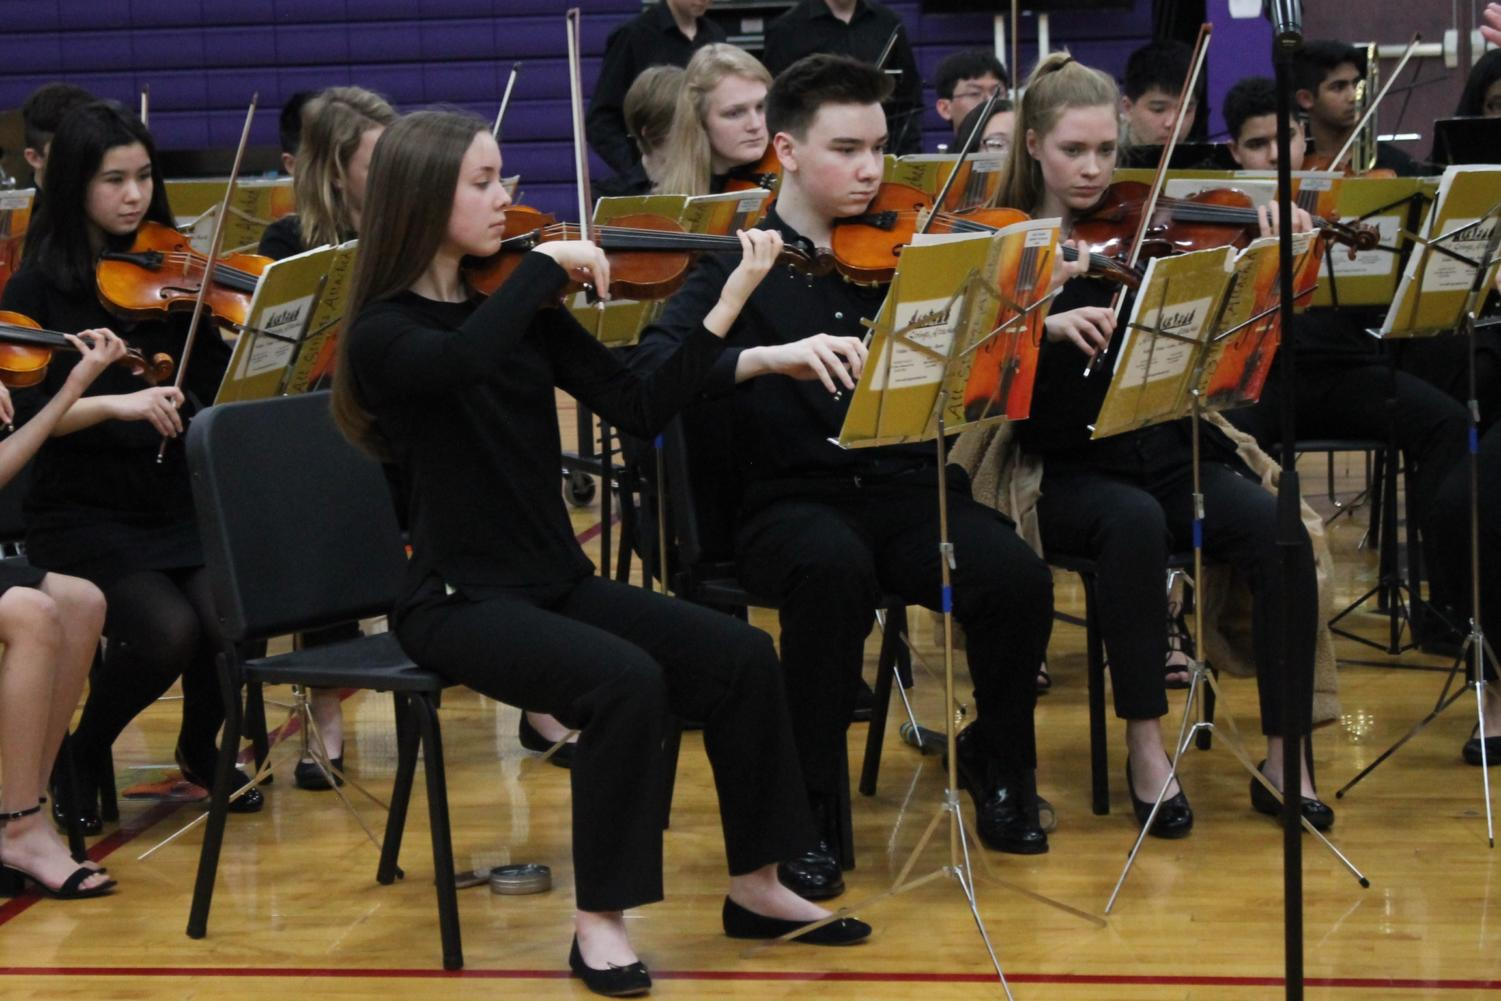 Students from The Blake School's Instrumental Program performed in the gym April 5.